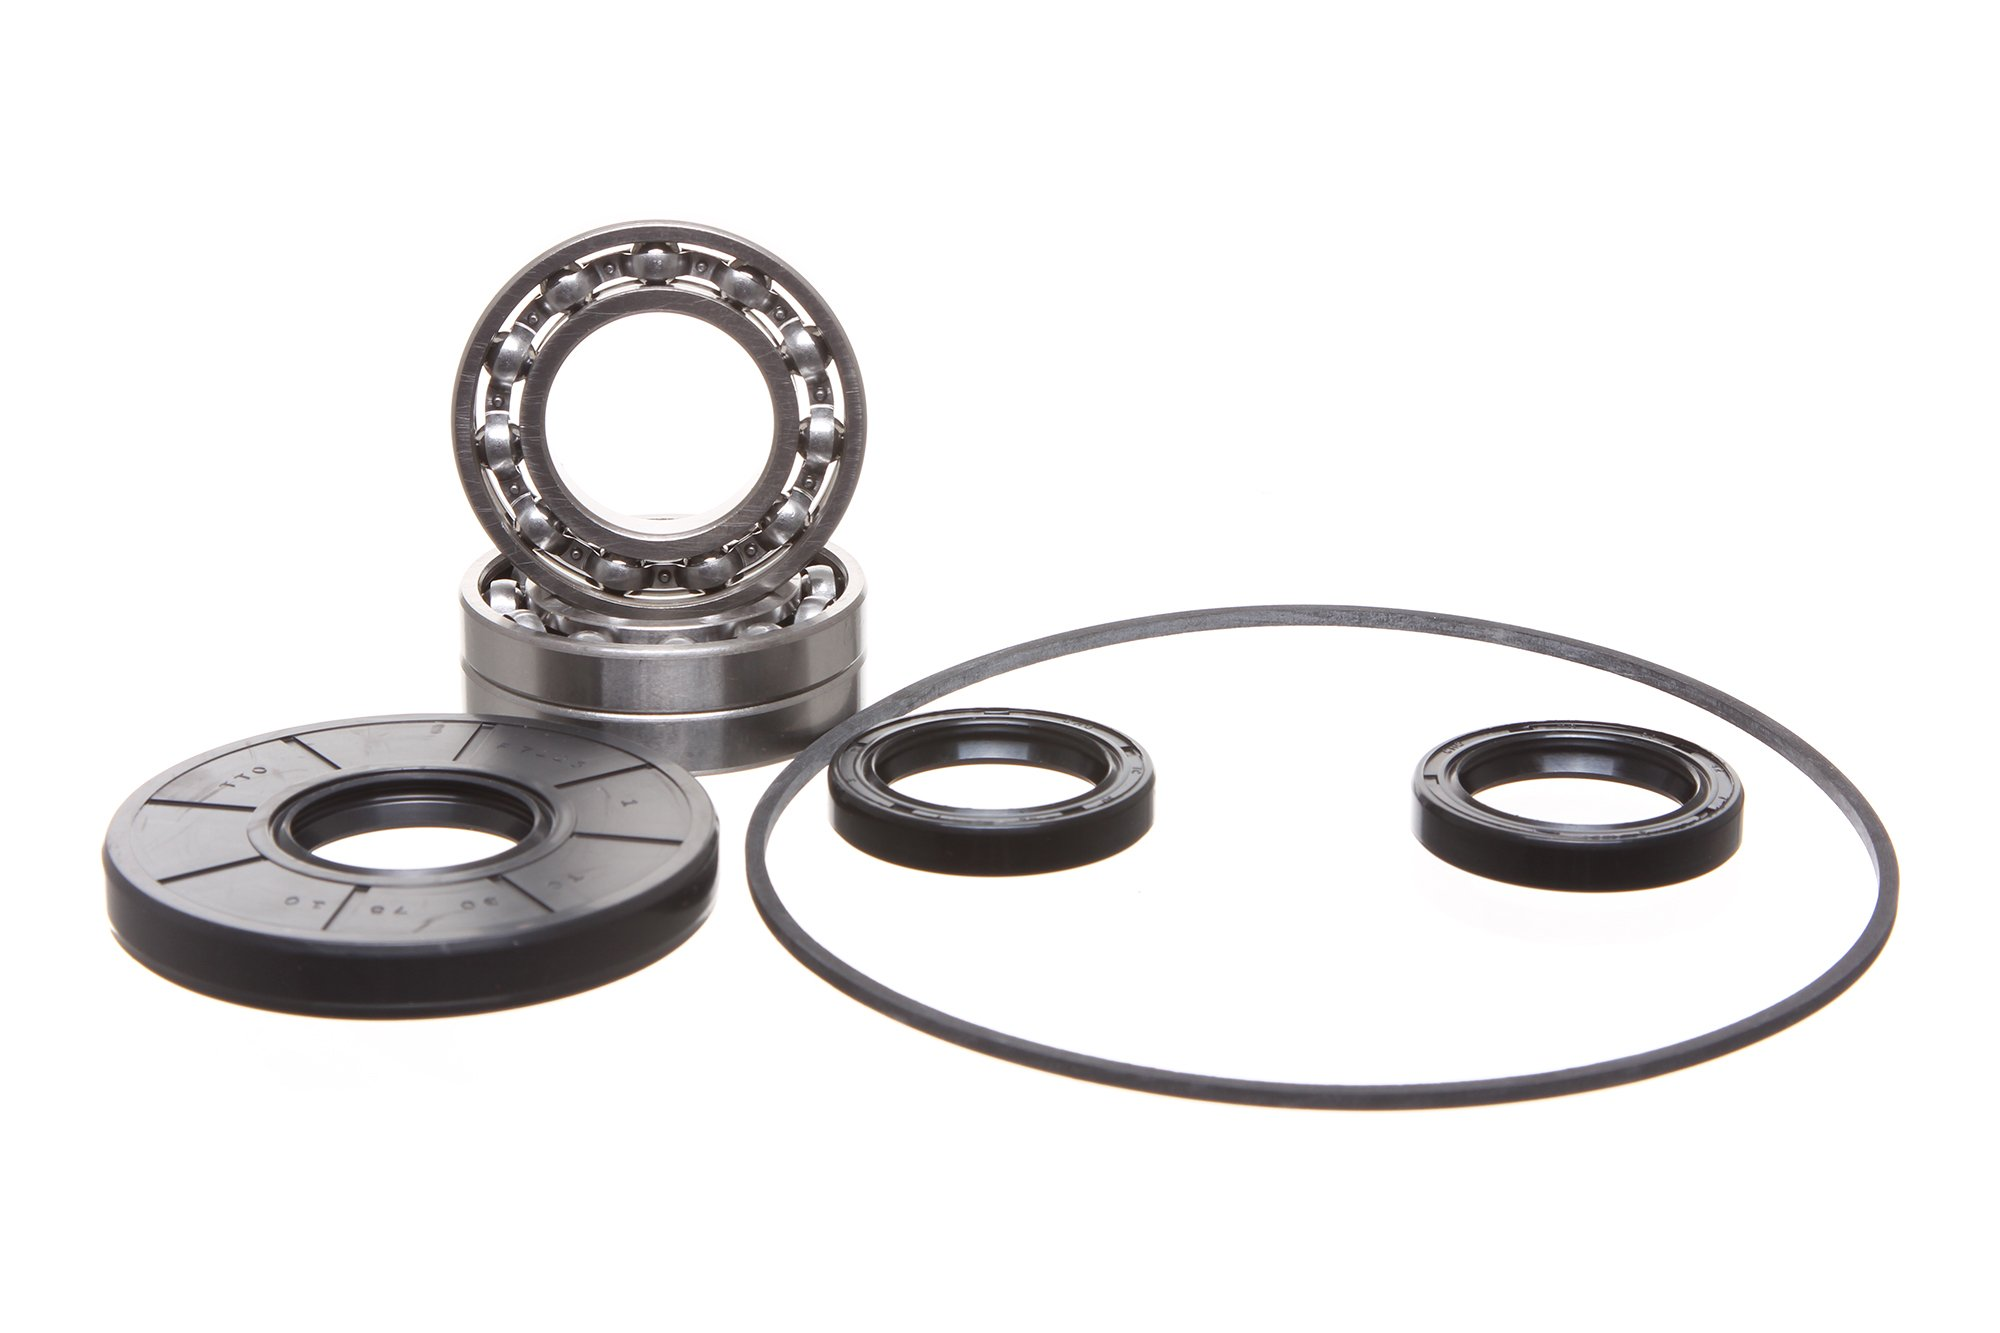 REPLACEMENTKITS.COM - Brand Fits Polaris Sportsman Front Differential Bearing & Seal Kit 2013-2017 - by REPLACEMENTKITS.COM